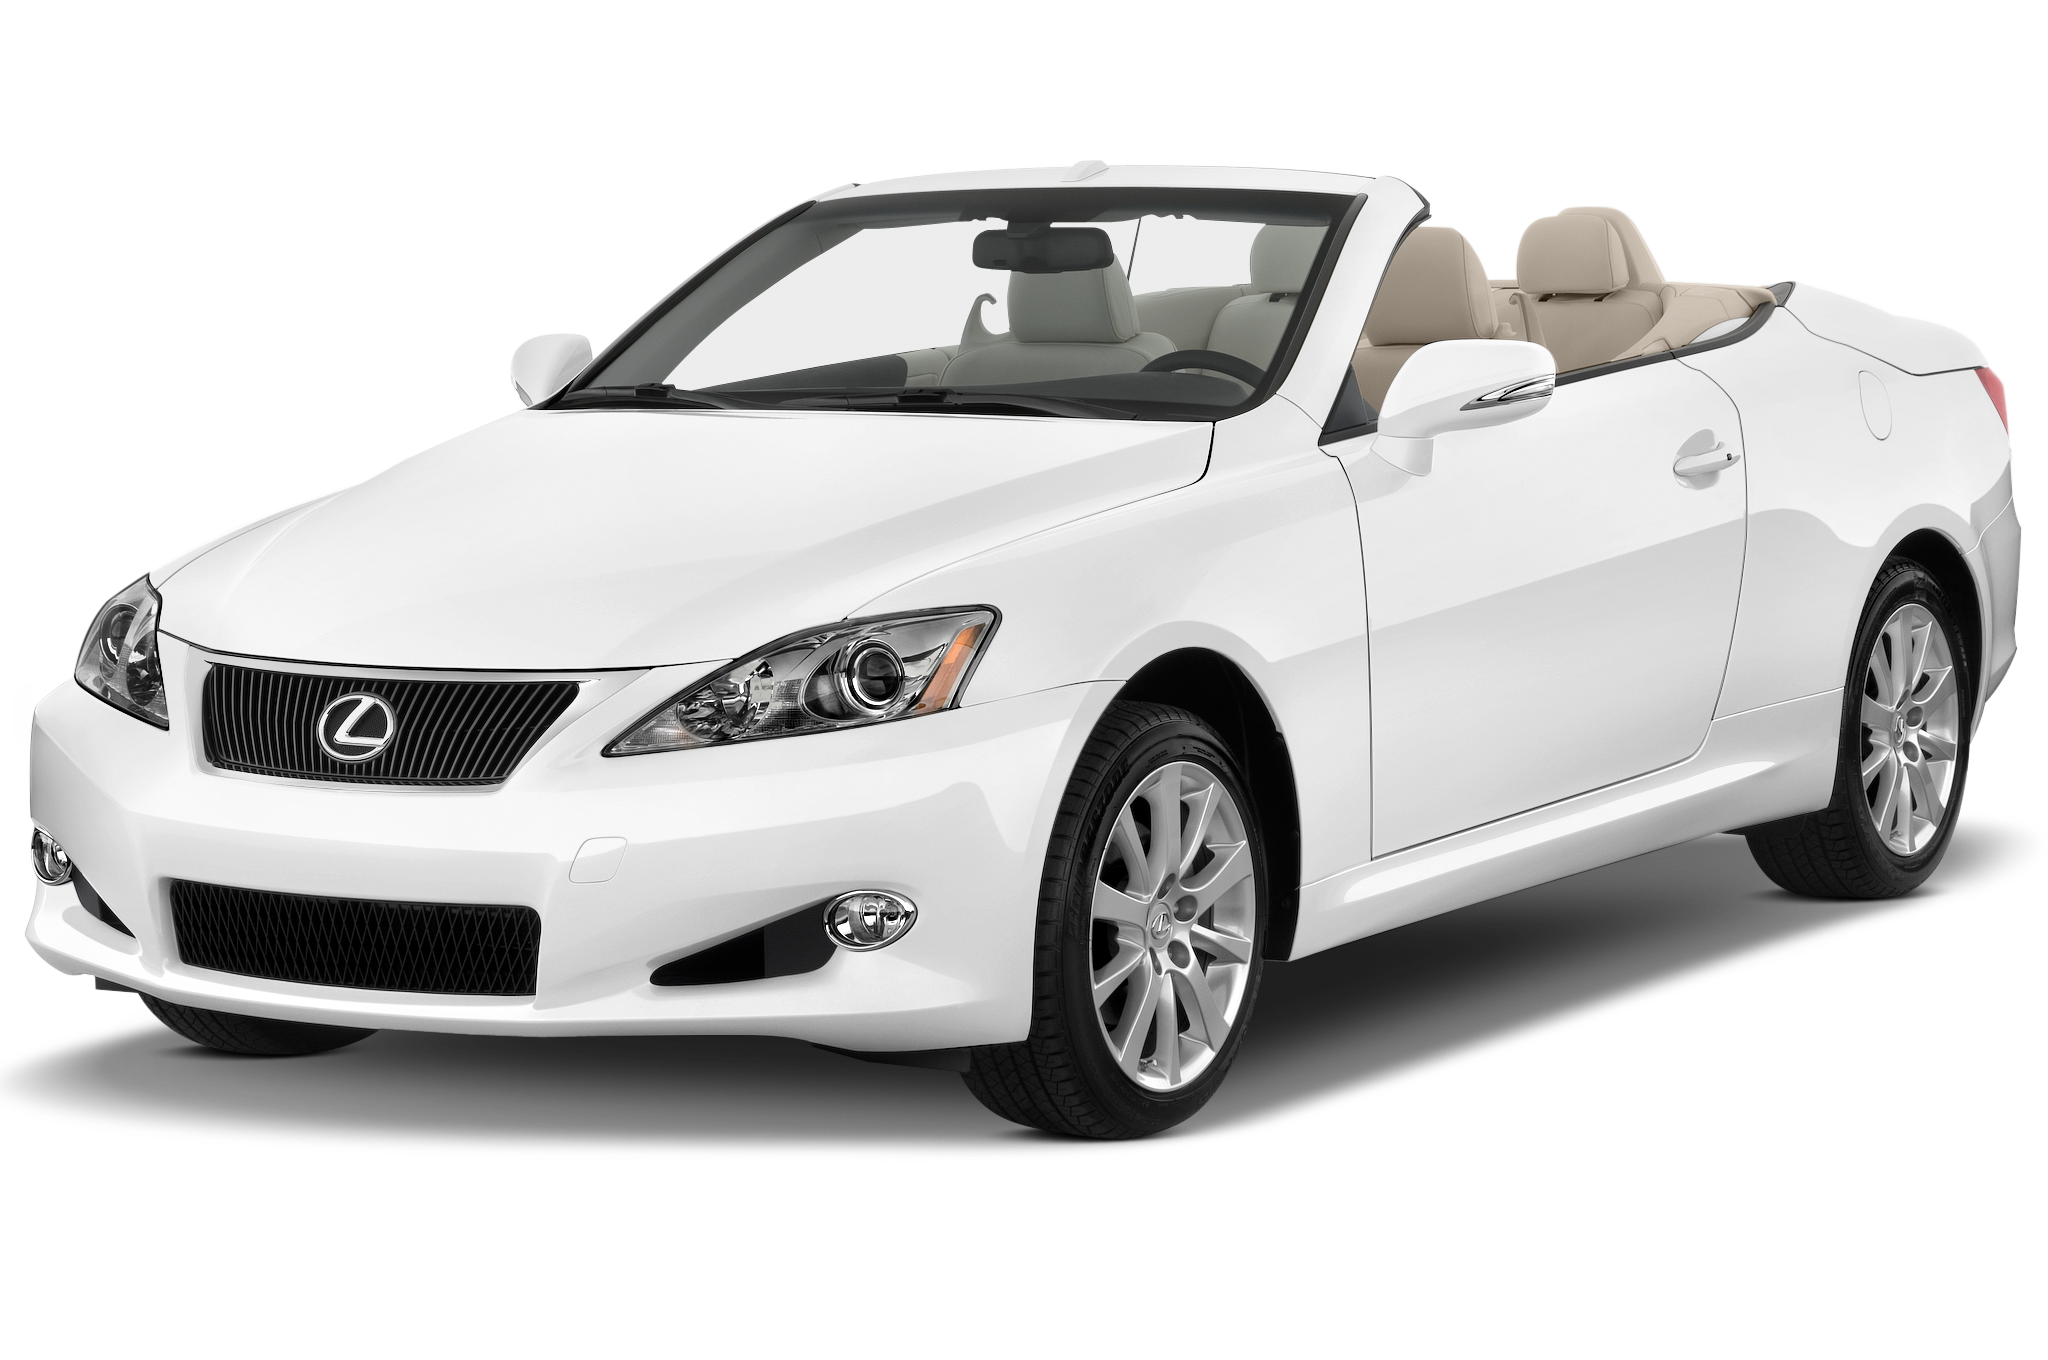 Exotic car clipart graphic free library Lexus car PNG images free download graphic free library